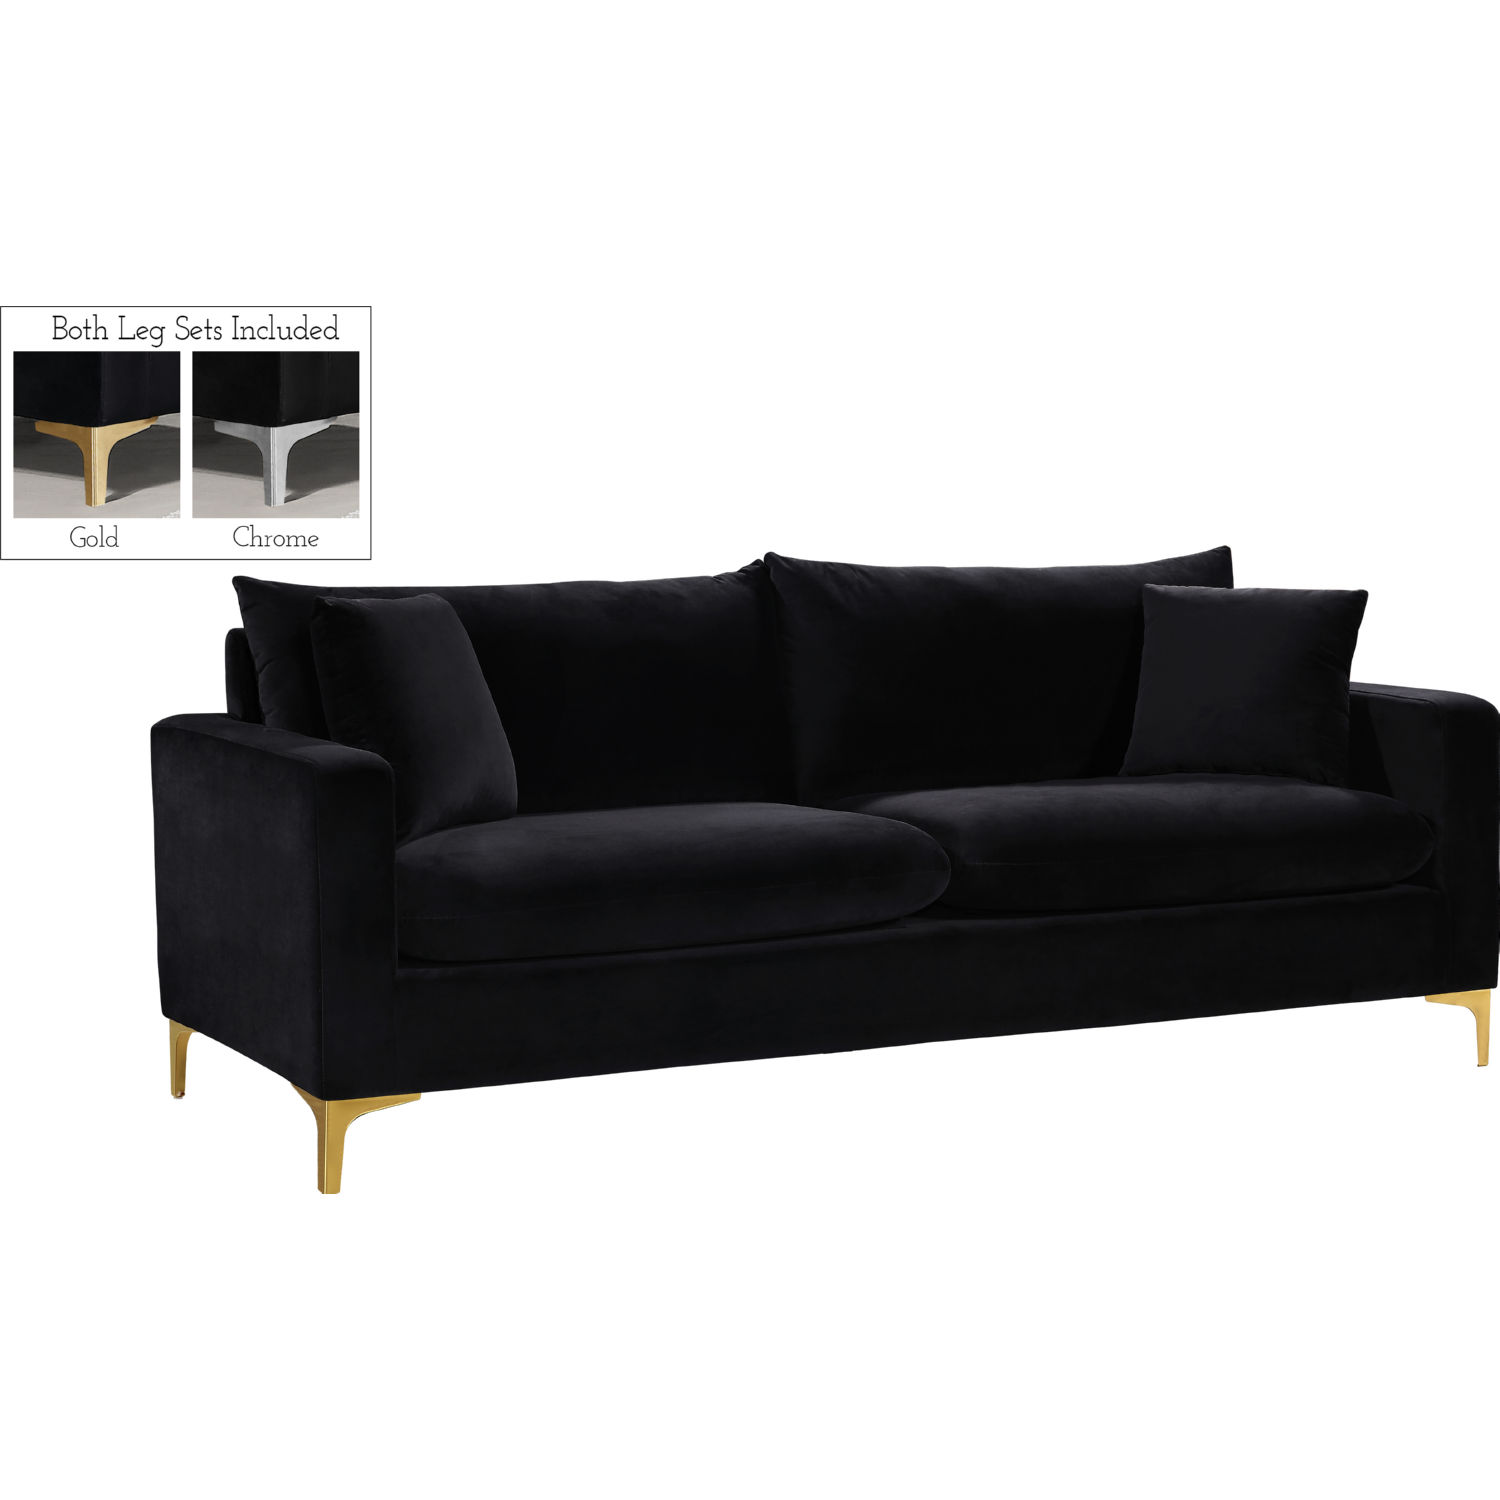 Meridian 633Black-S Naomi Sofa in Black Velvet w/ Gold or Chrome Legs